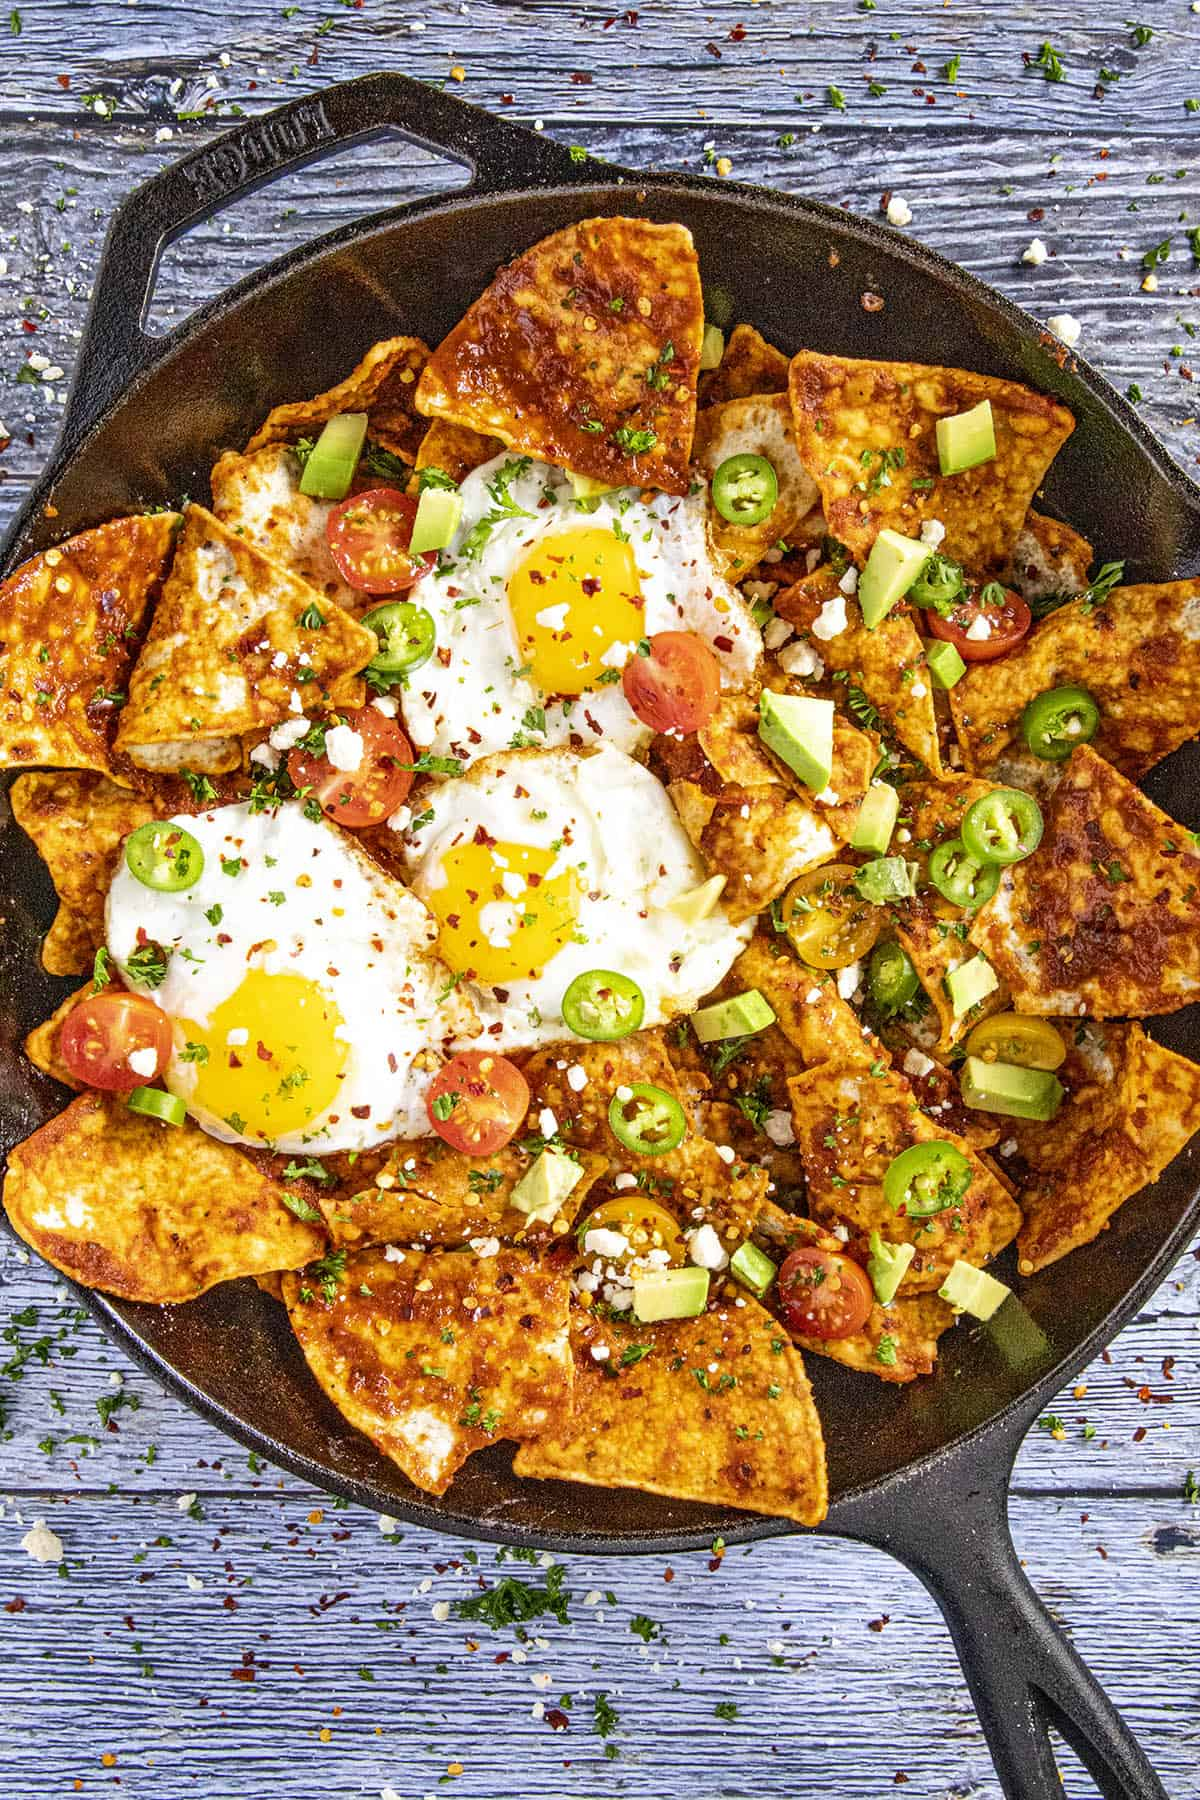 A pan full of Chilaquiles Rojos